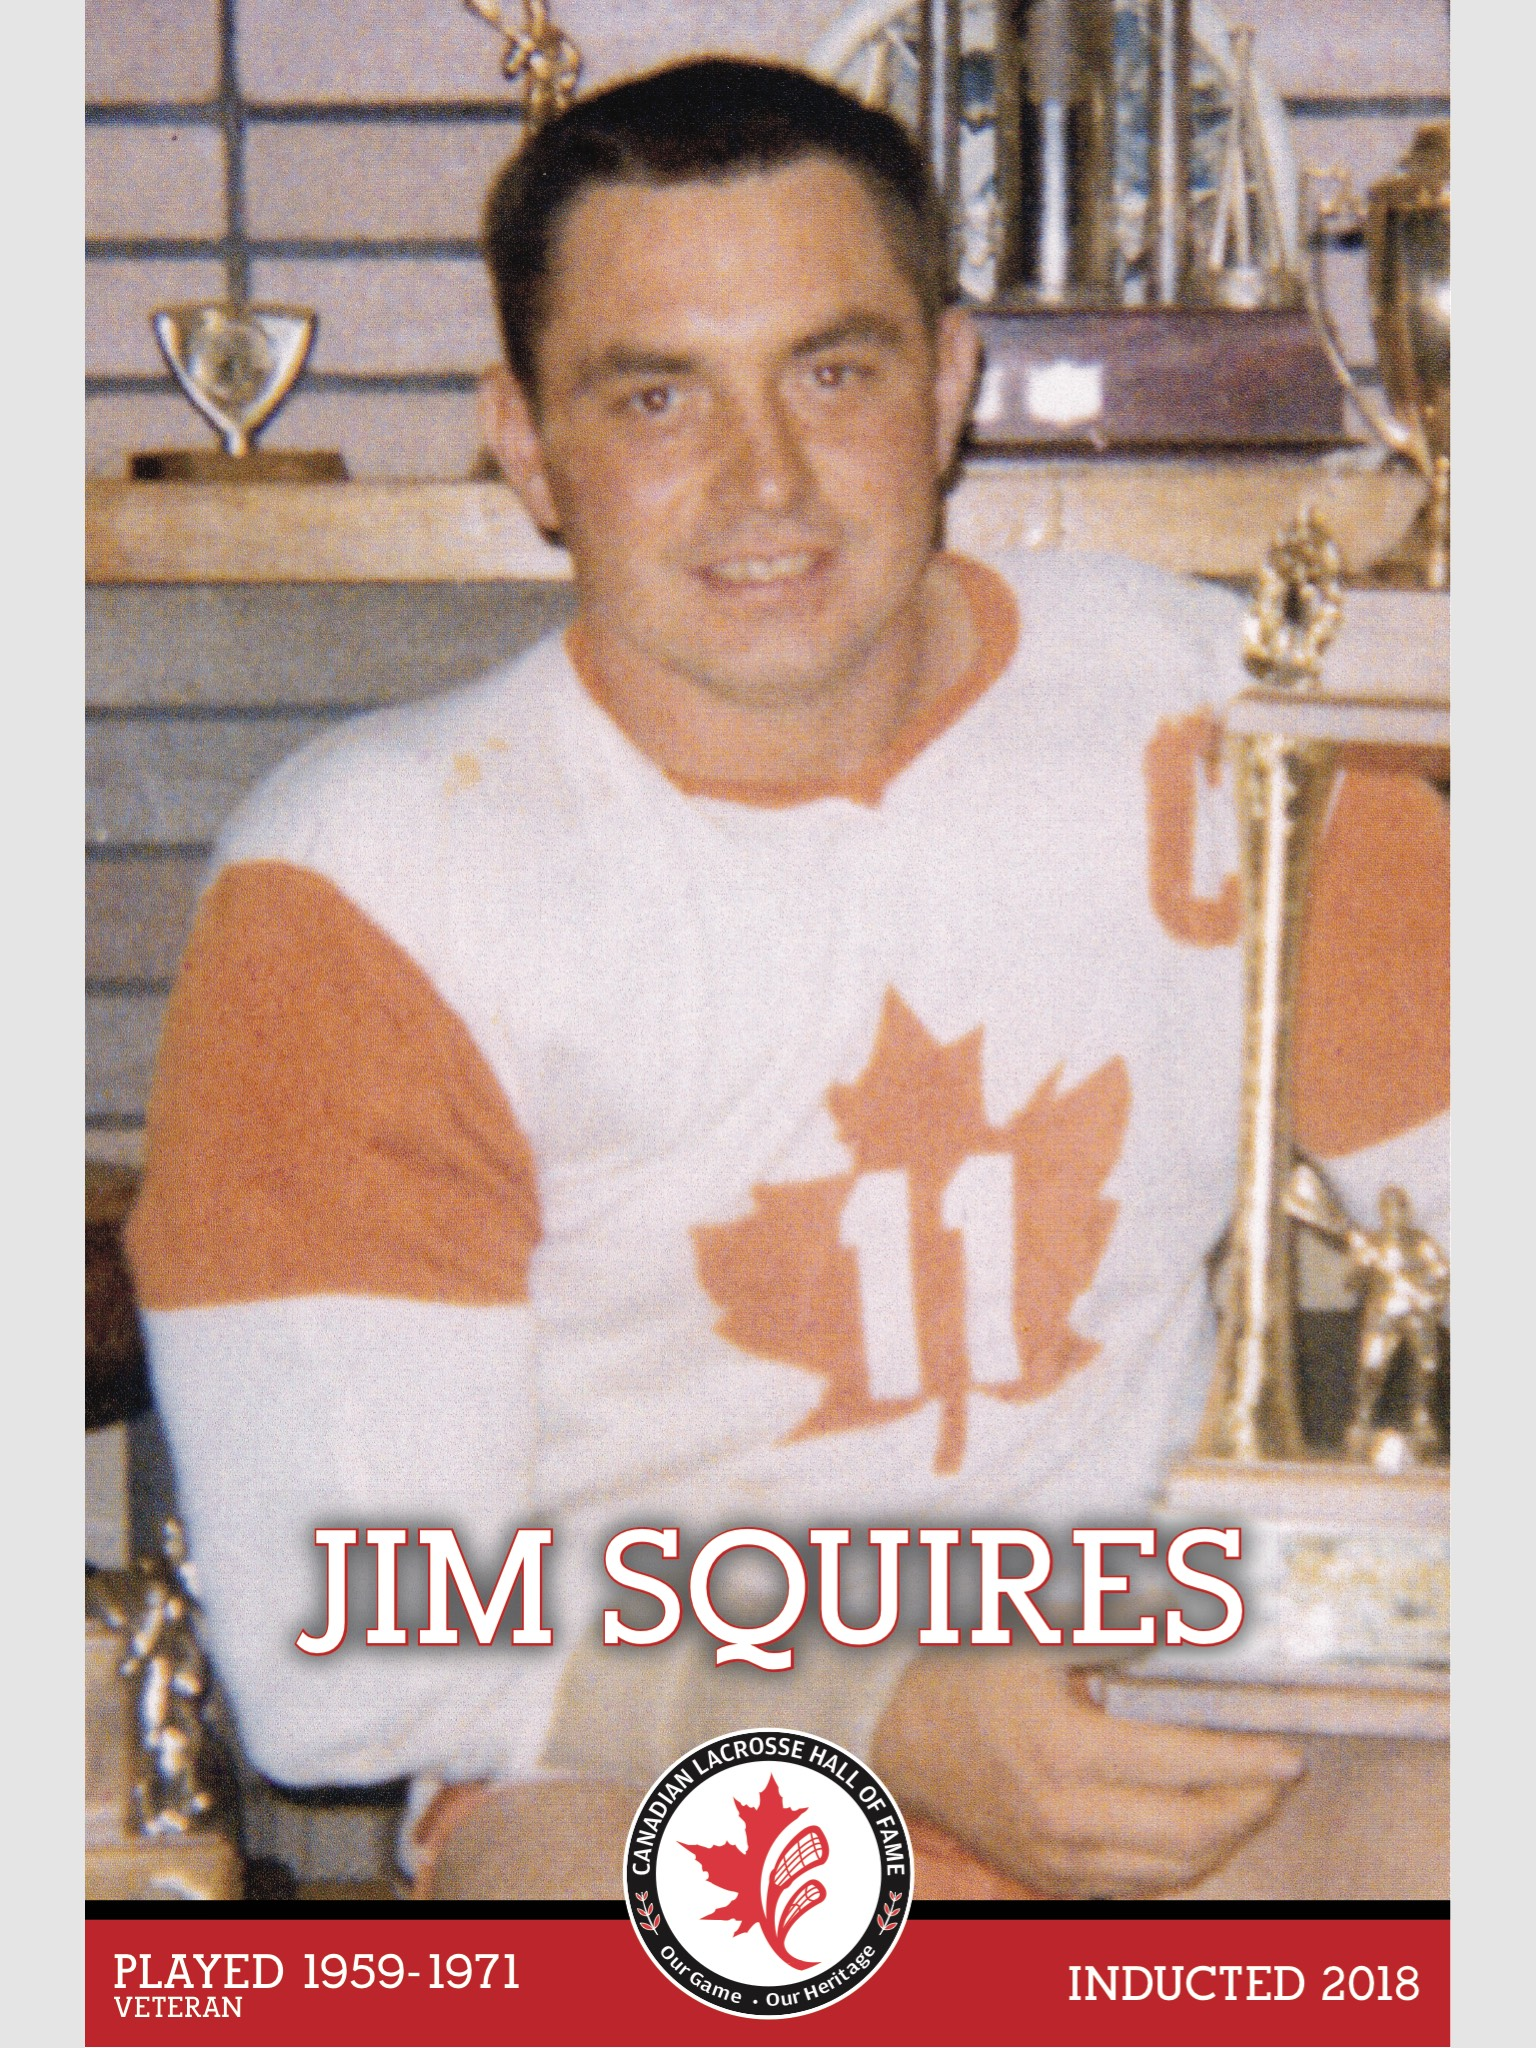 Jim Squires